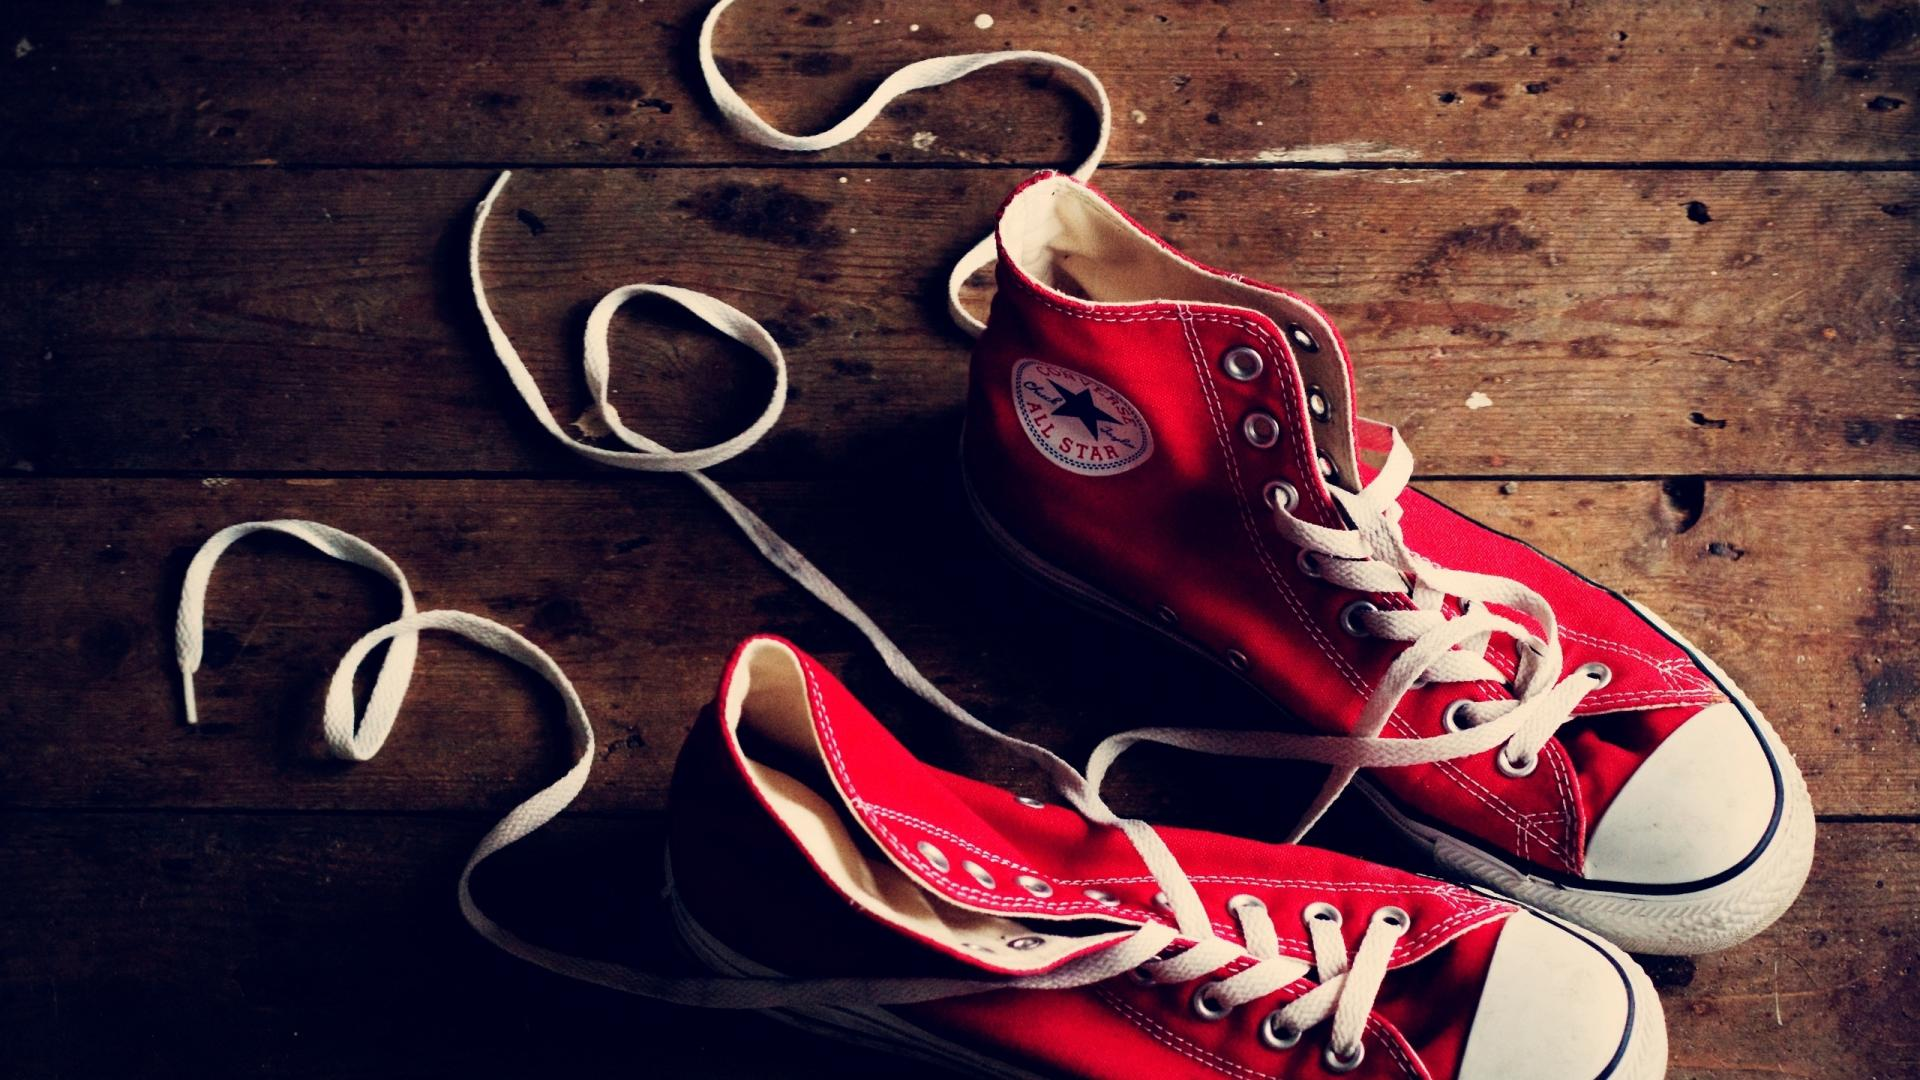 Cool Shoes Wallpaper 30661 1920x1200 px